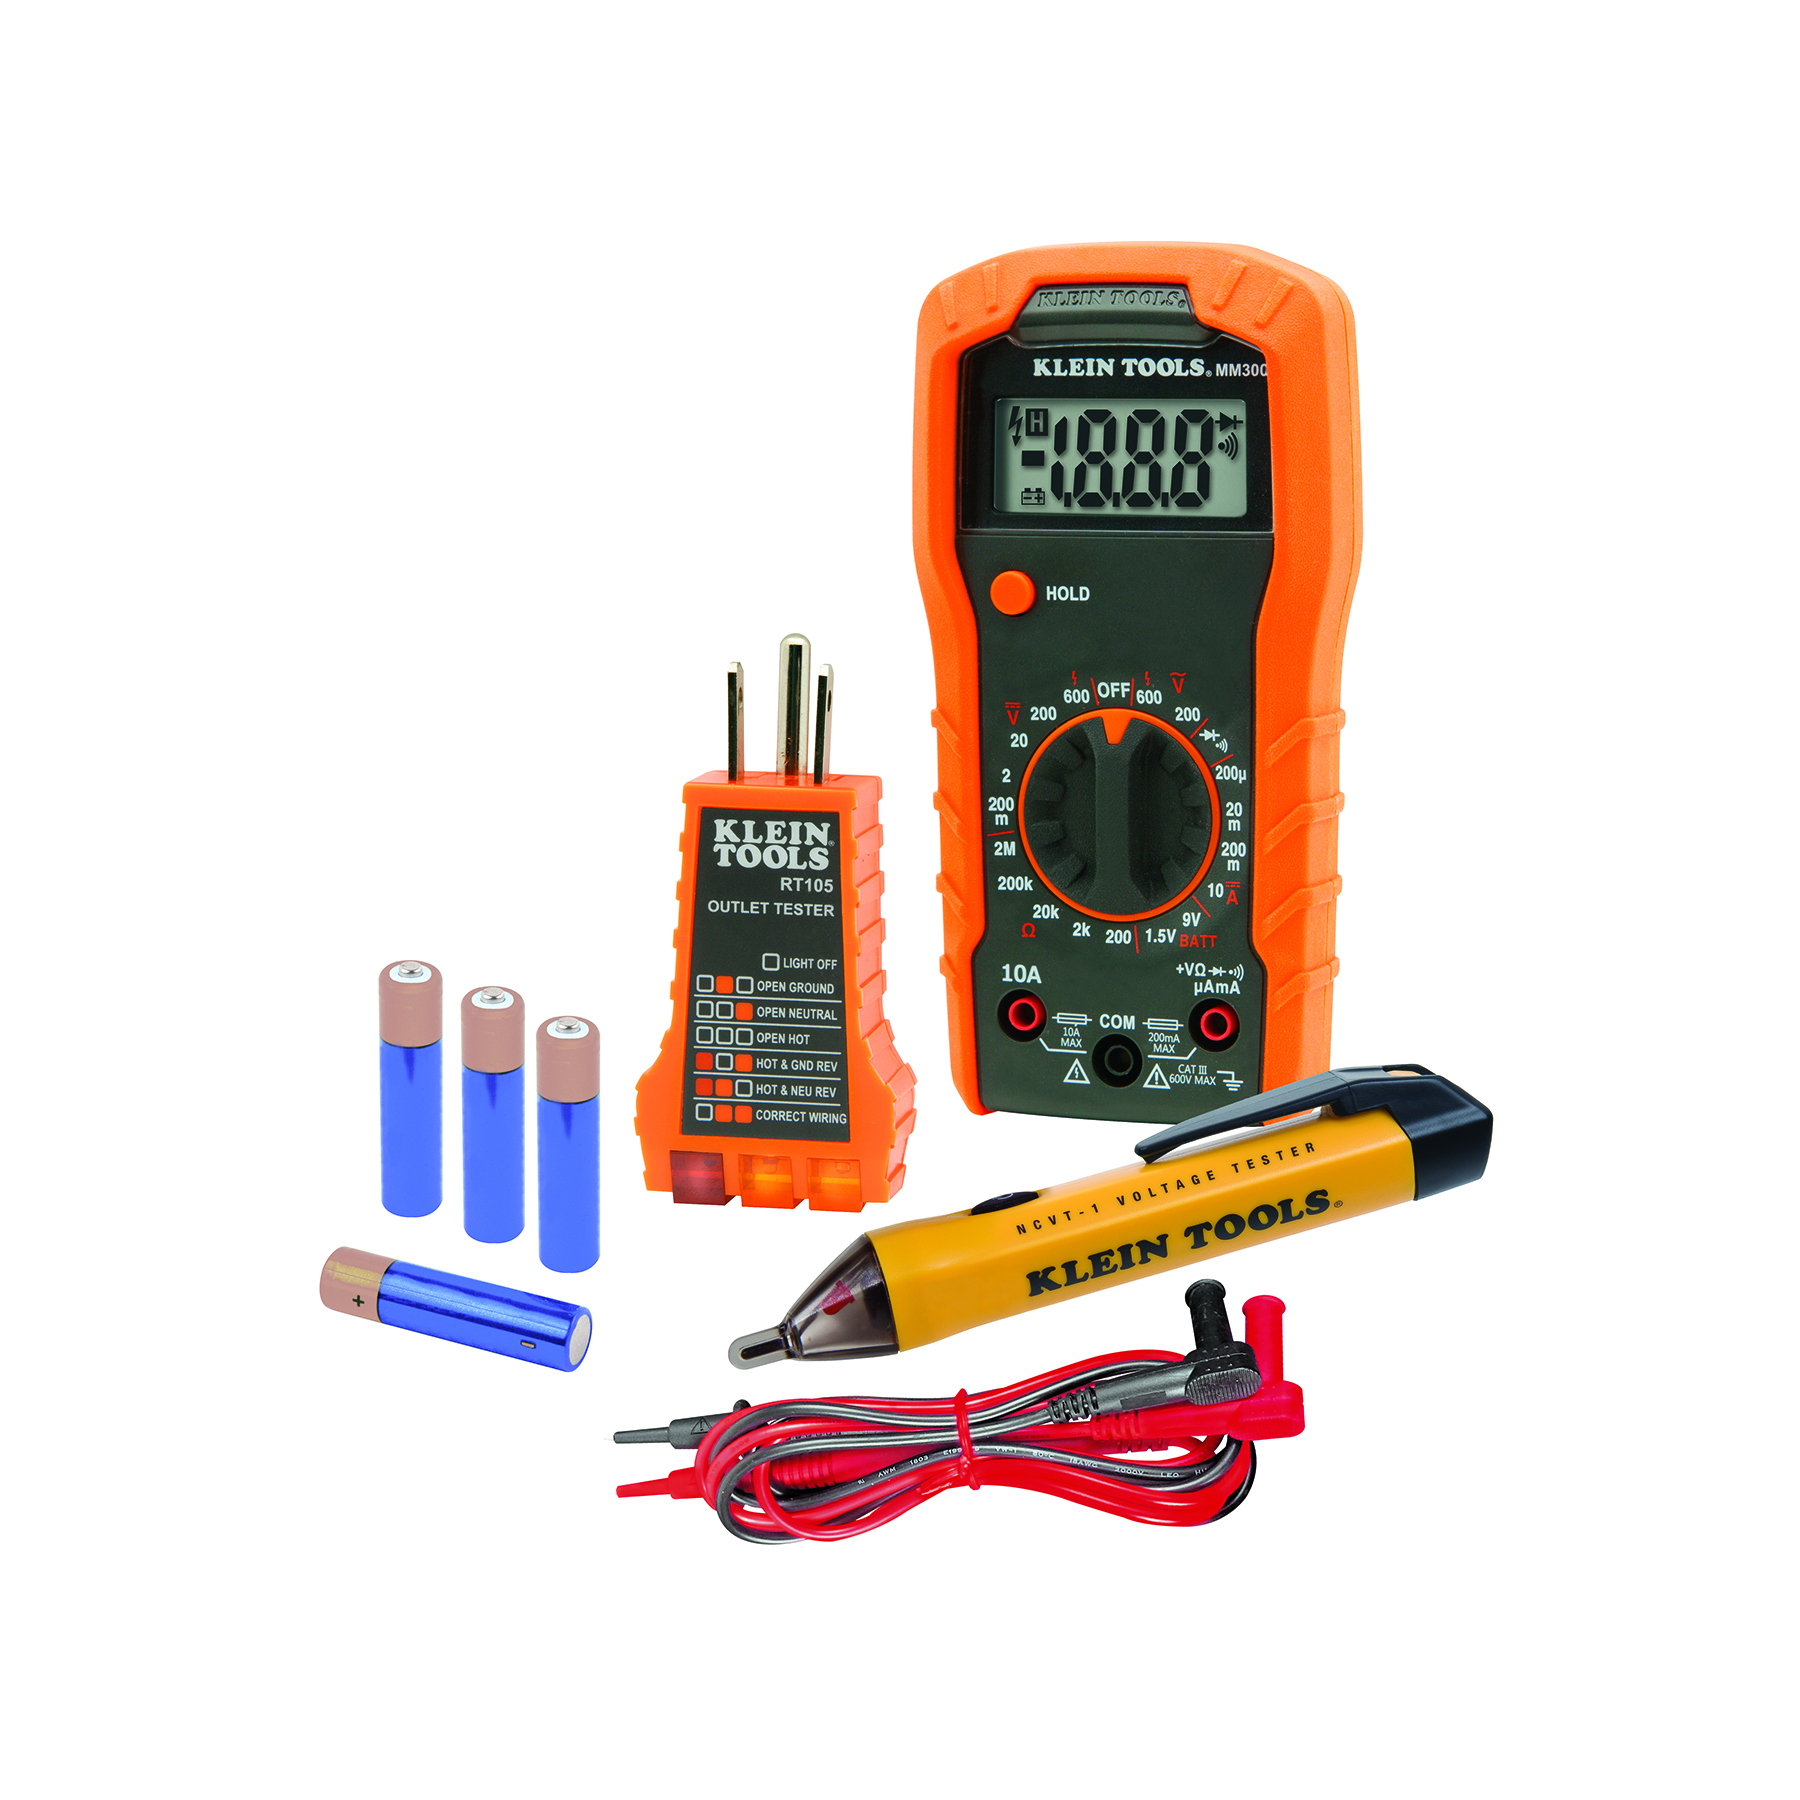 Electrical Test Kit 69149 Klein Tools For Professionals Since 1857 Tool Aid Intermittent Short Finder And Circuit Images